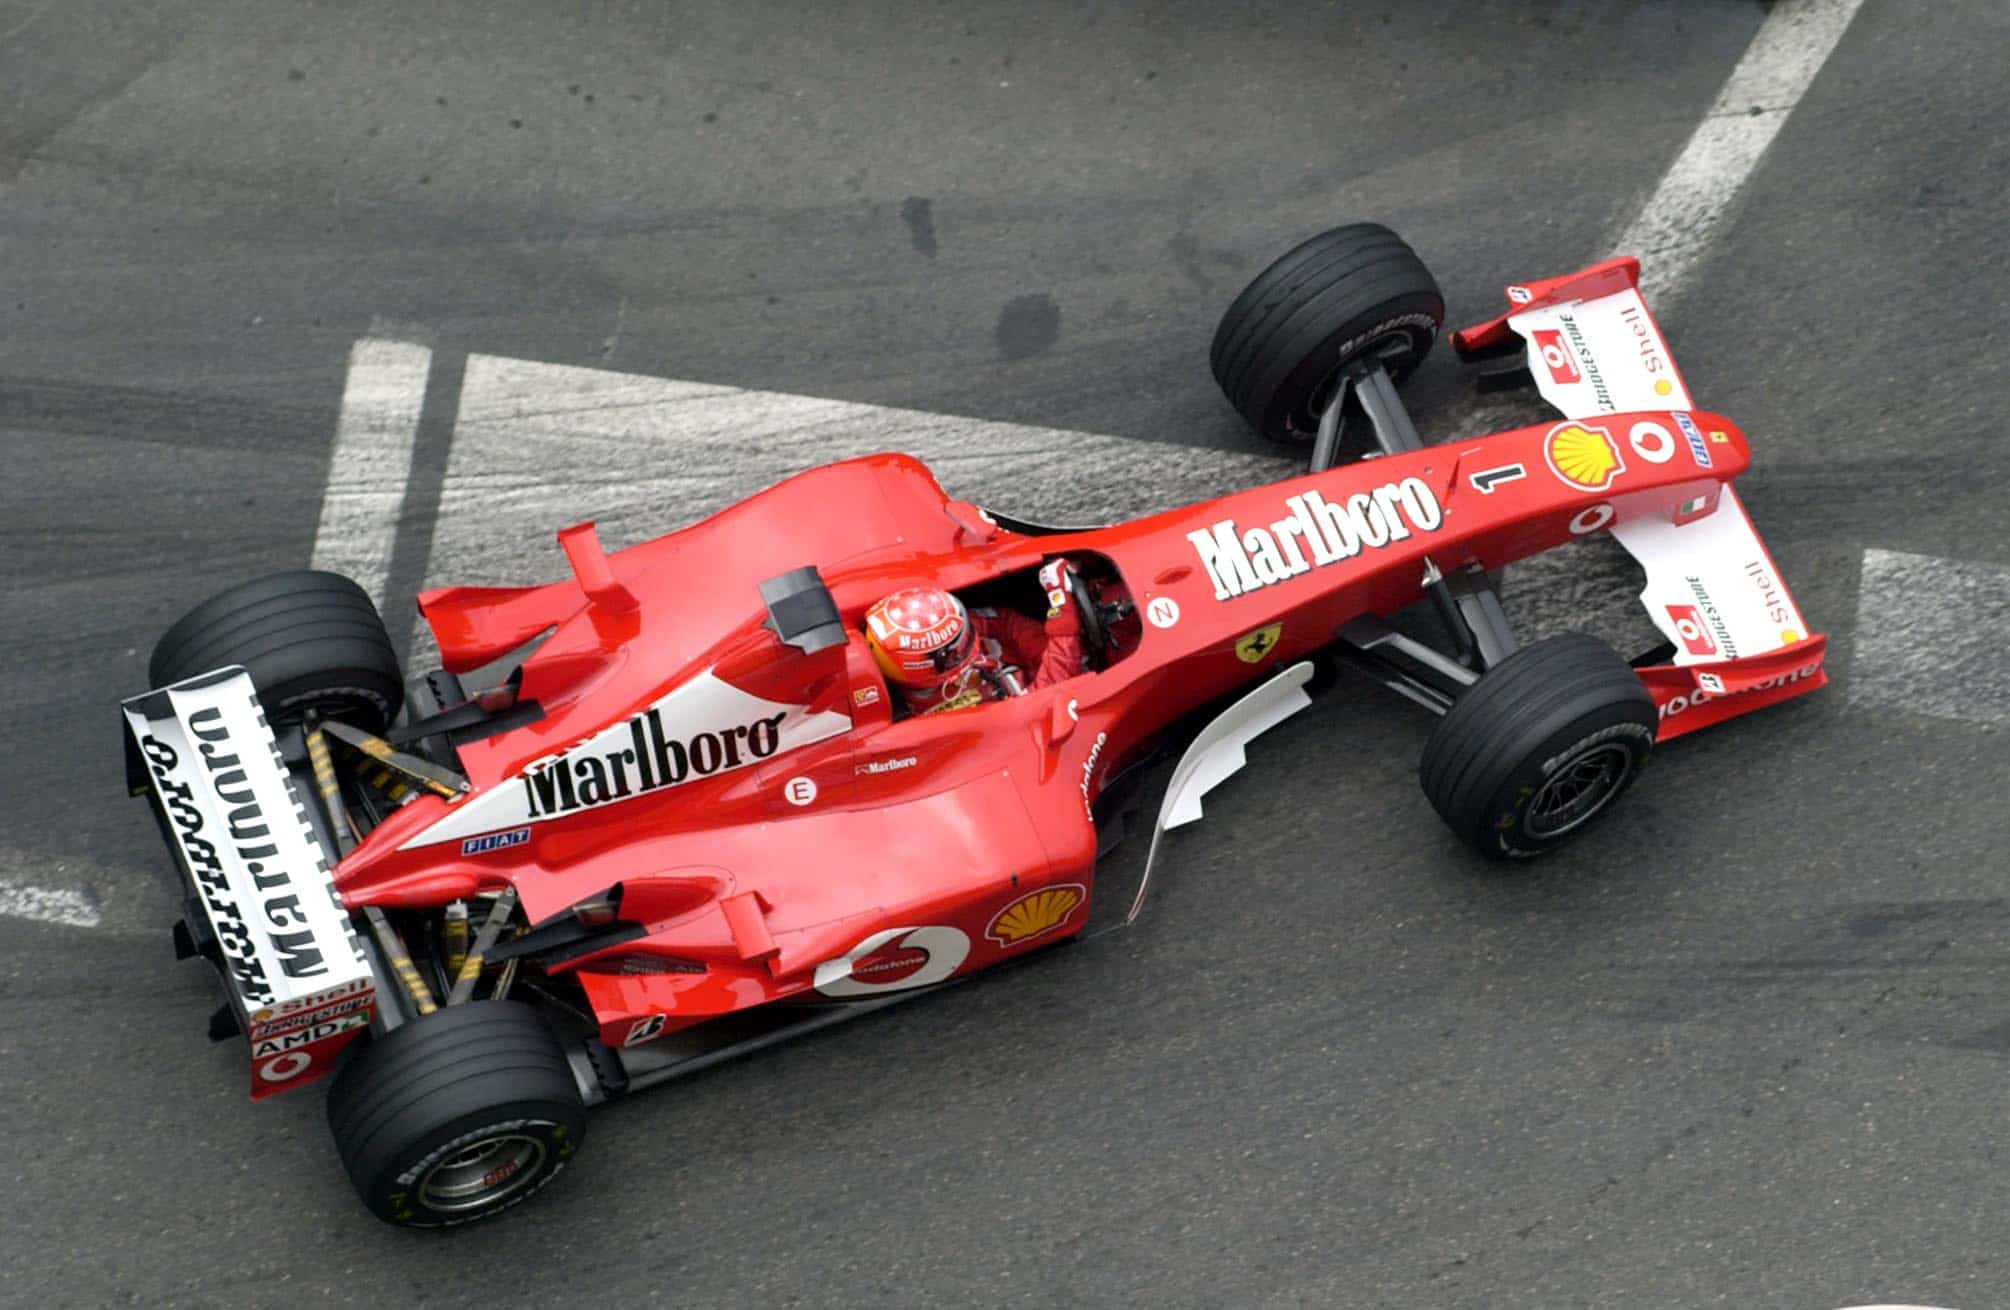 Monaco GP F1 2002 Michael Schumacher F2002 Photo Ferrari